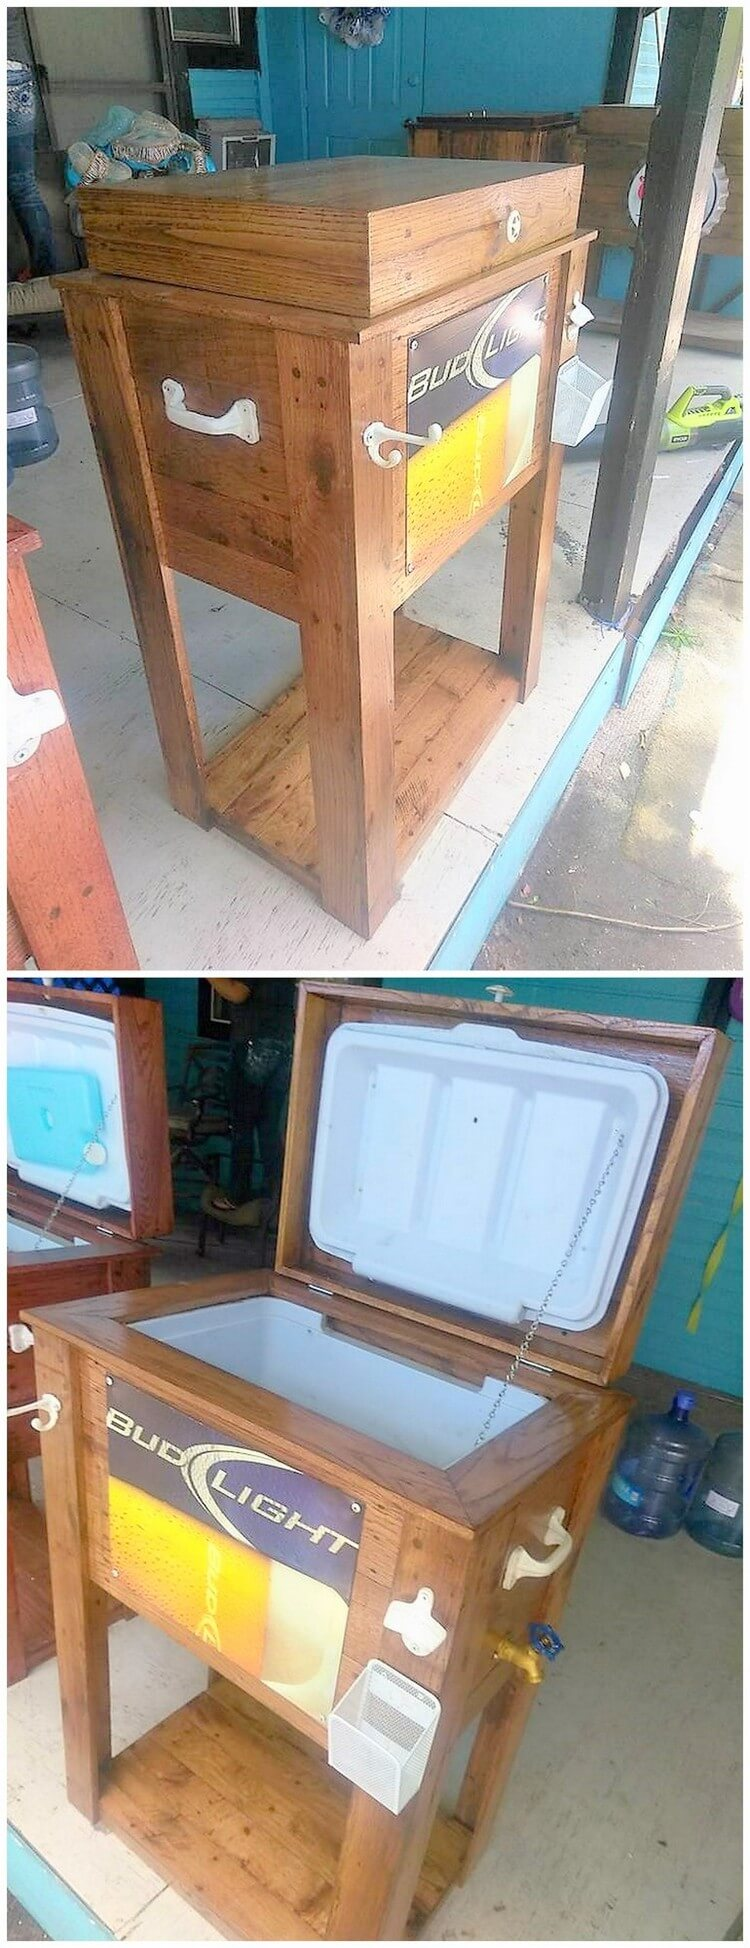 Recycled Pallet Cooler Idea